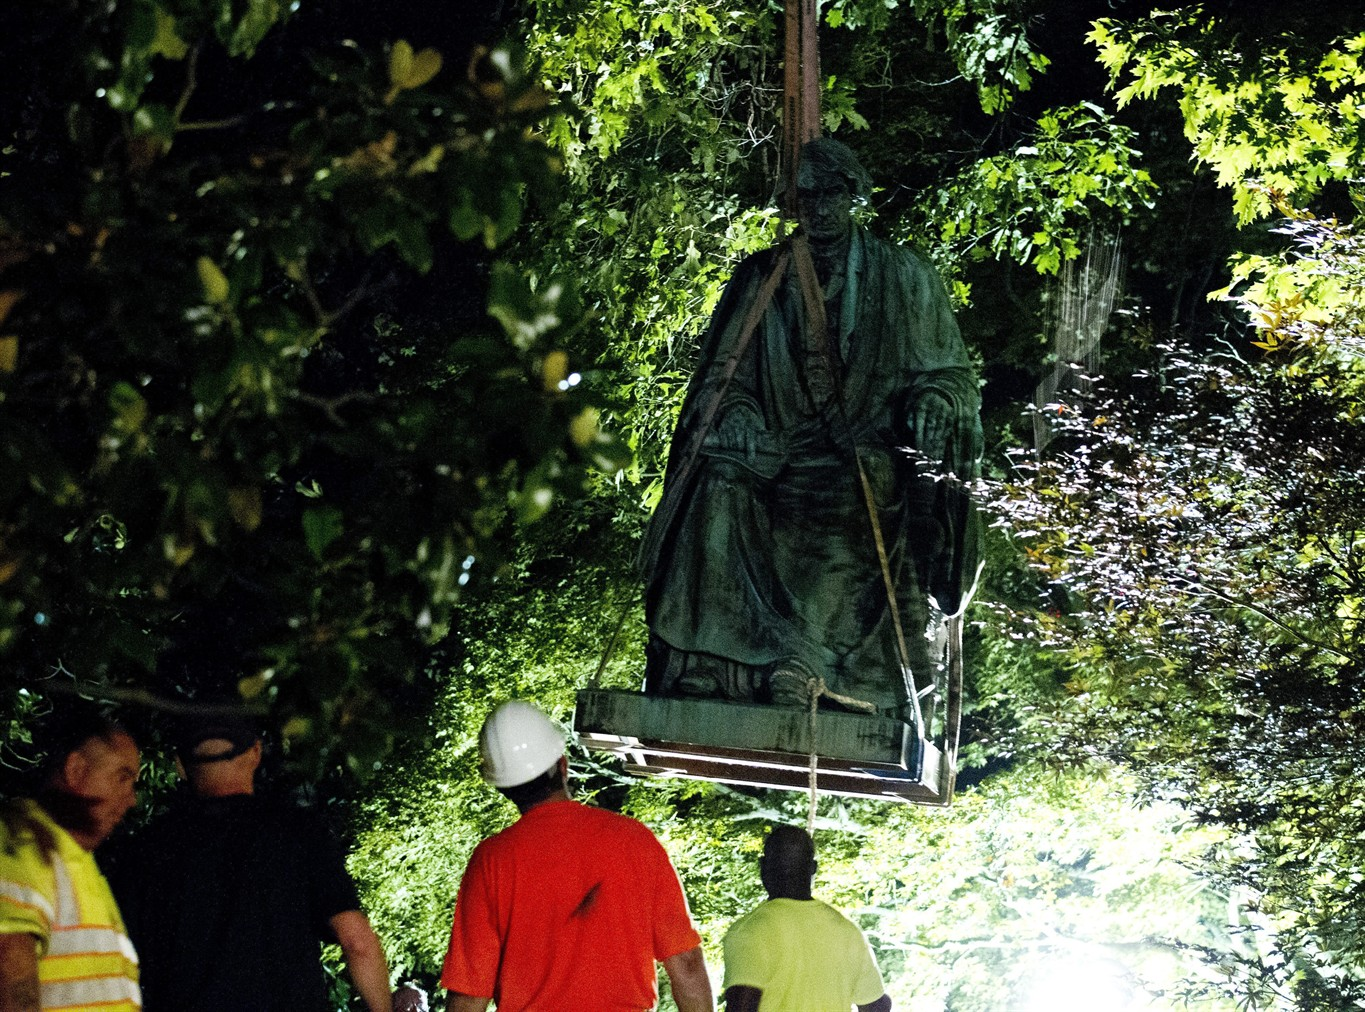 Overnight removal takes down Taney statue in Annapolis